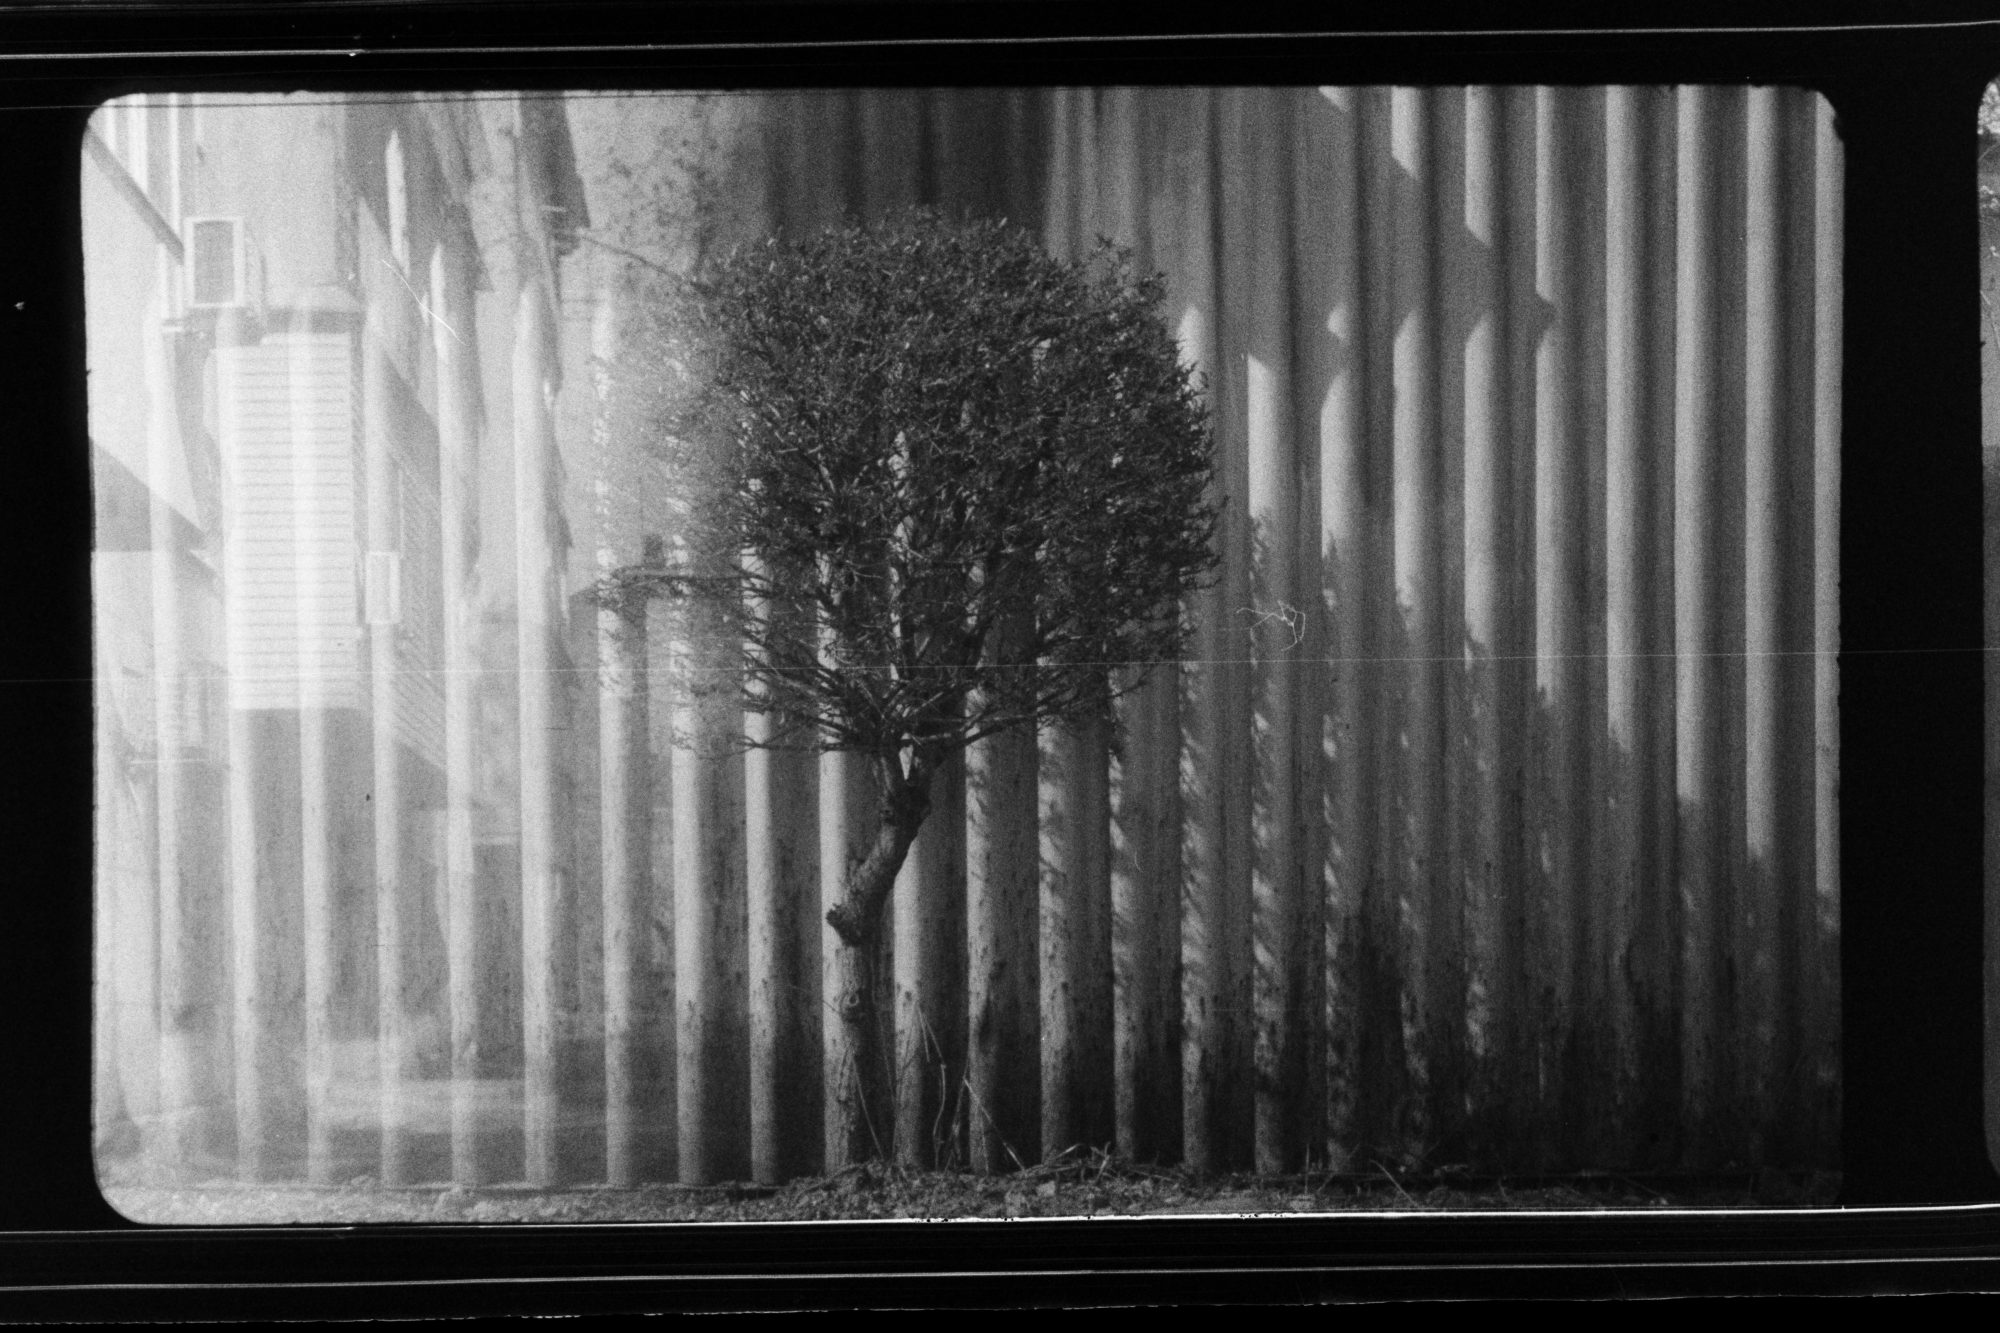 Tree against fence (Pic: Andrey Khludeyev)